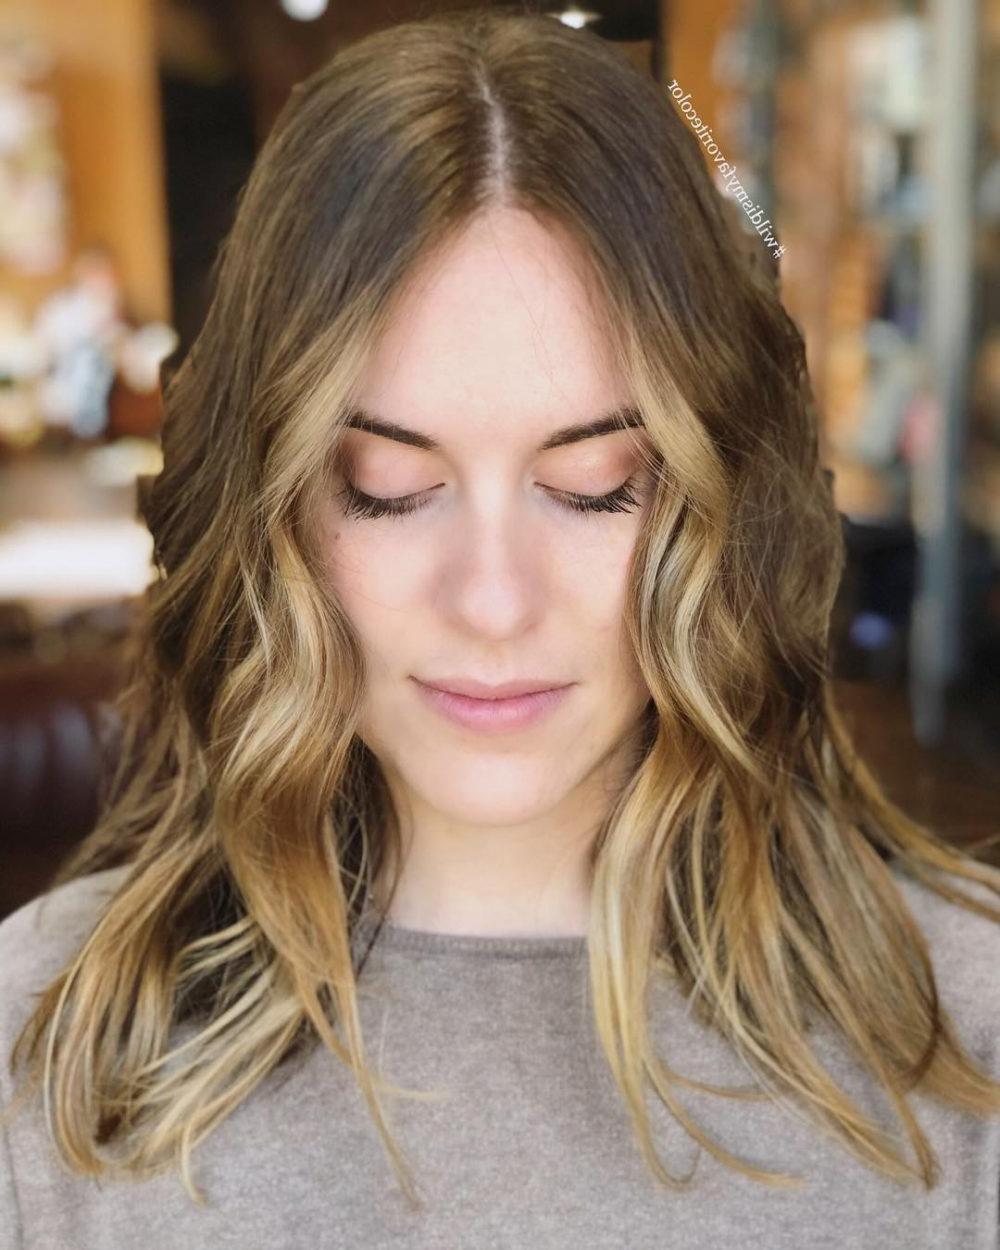 17 Flattering Medium Hairstyles For Round Faces In 2019 Intended For Favorite Medium Hairstyles With Layers For Round Faces (View 1 of 20)